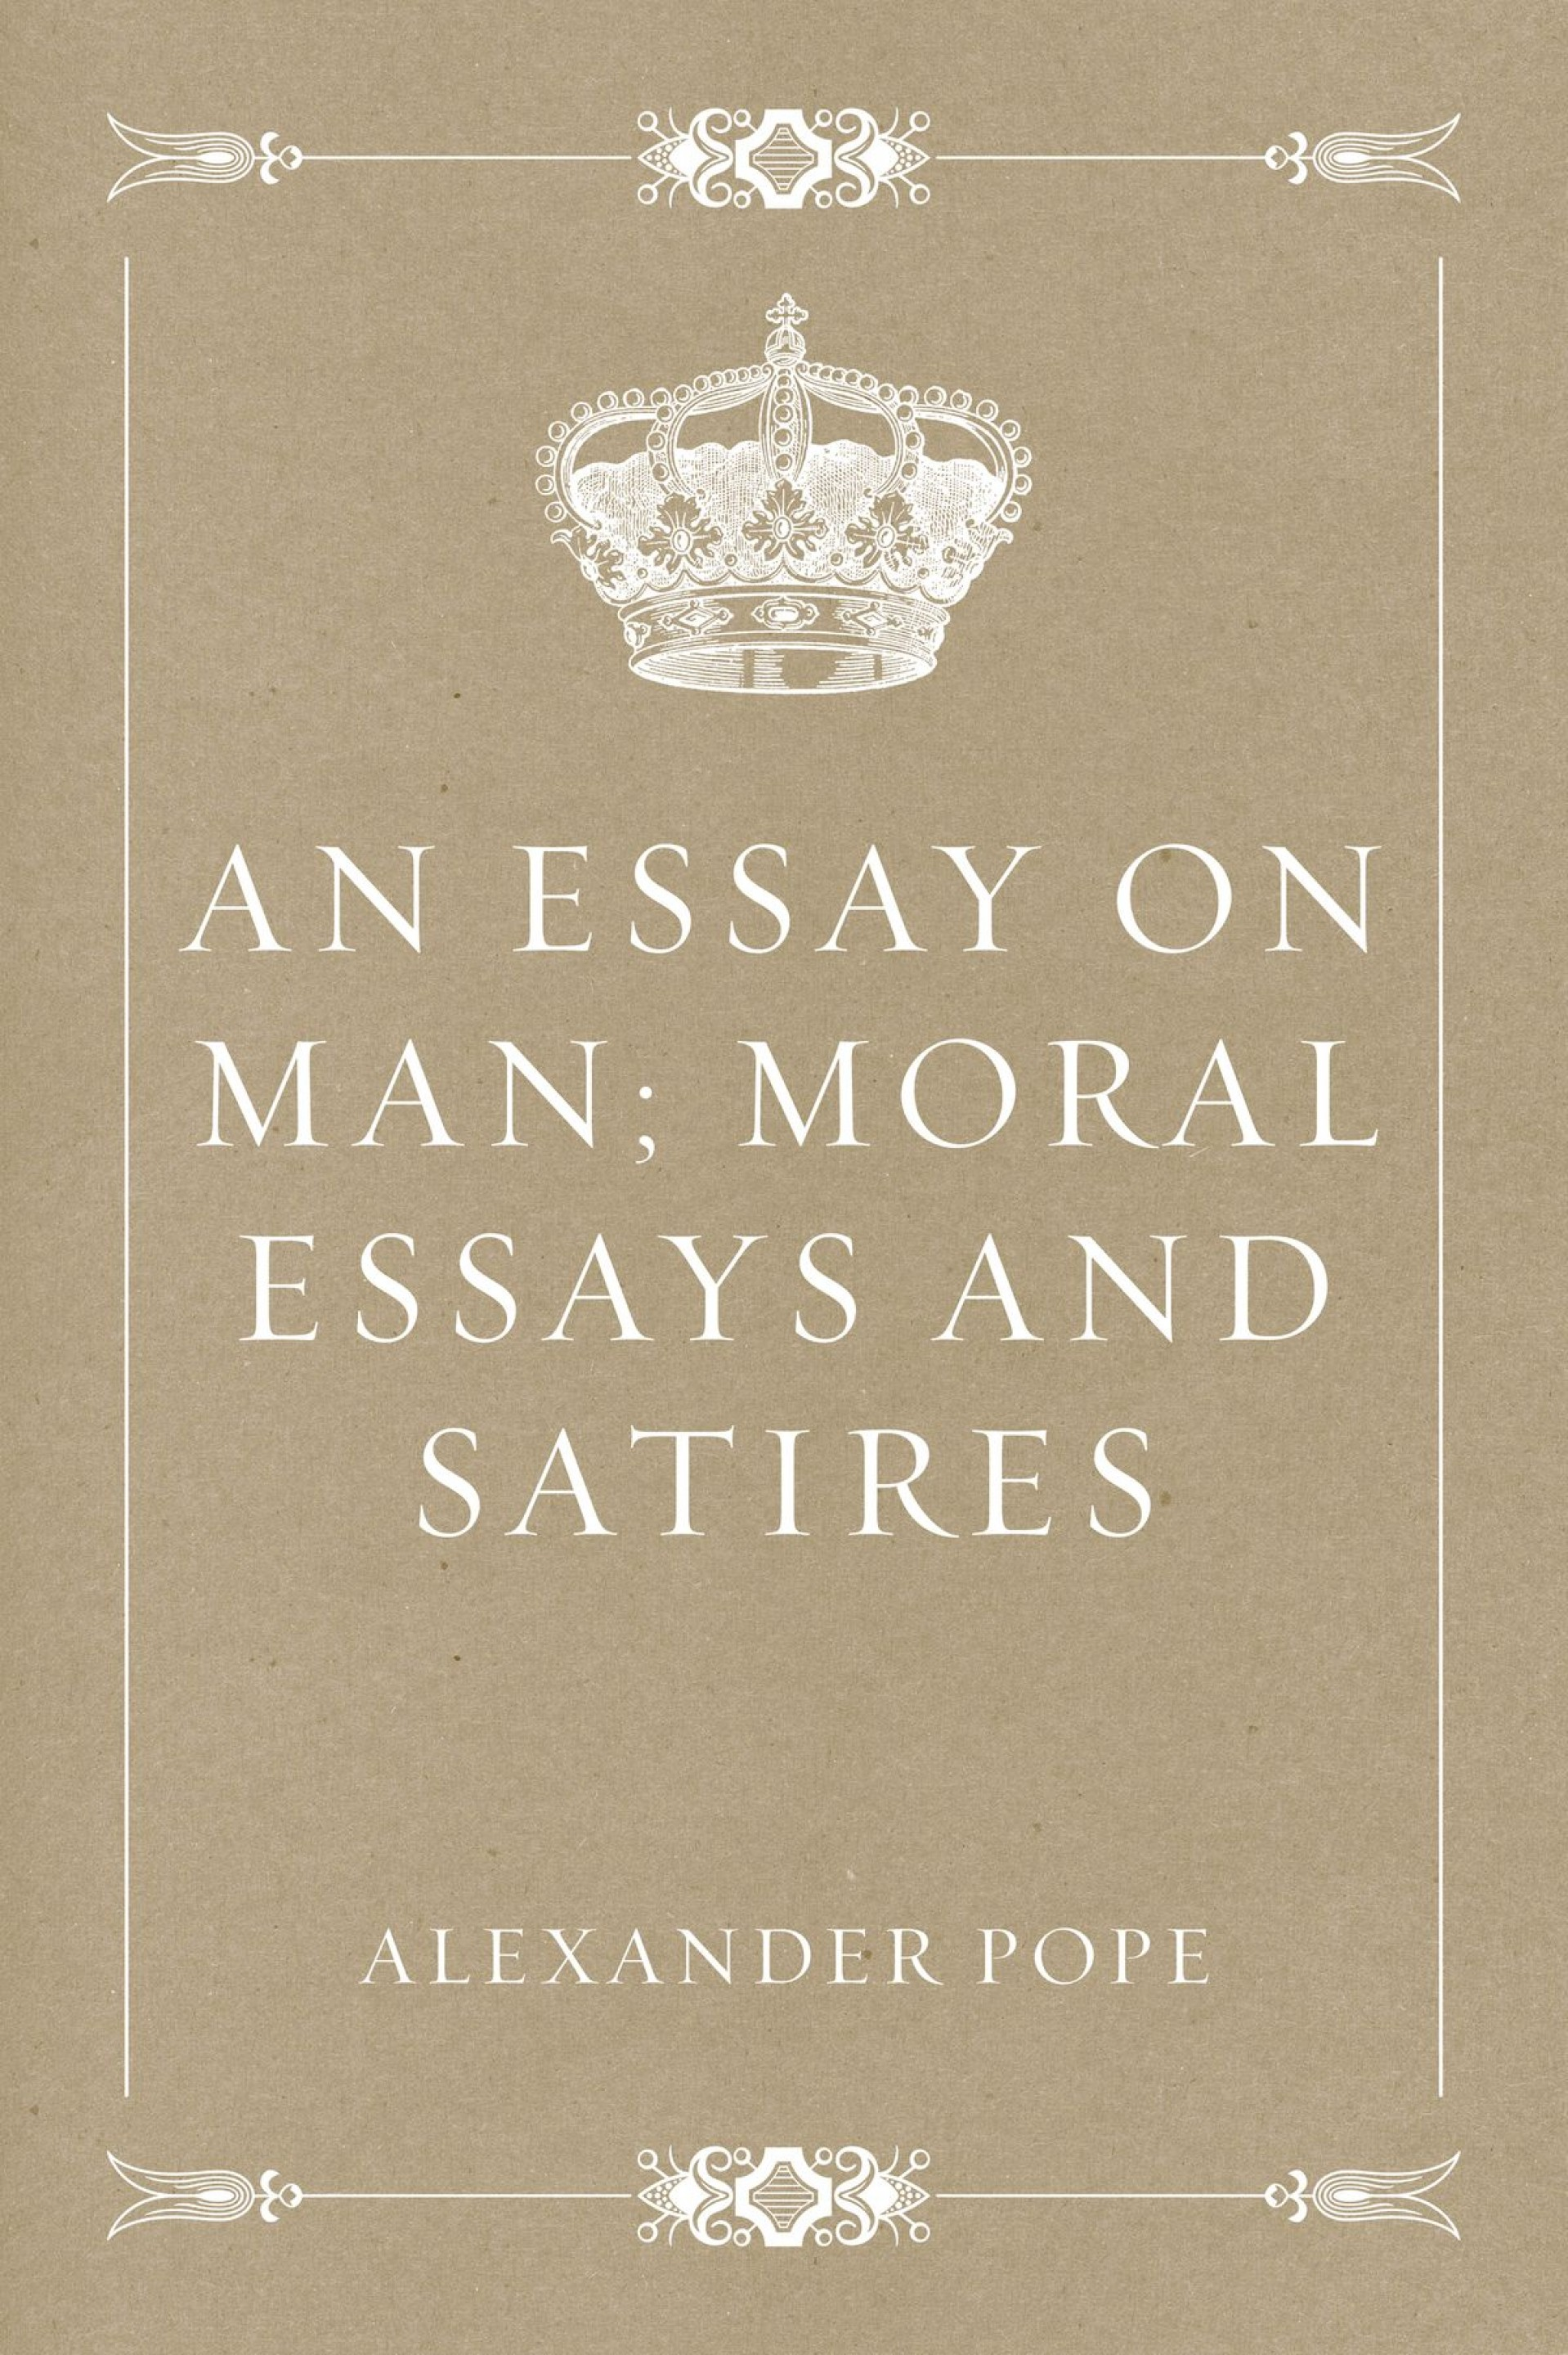 005 An Essay On Man Moral Essays And Satires Fantastic Epistle 2 Meaning Summary Sparknotes Part 1 1920